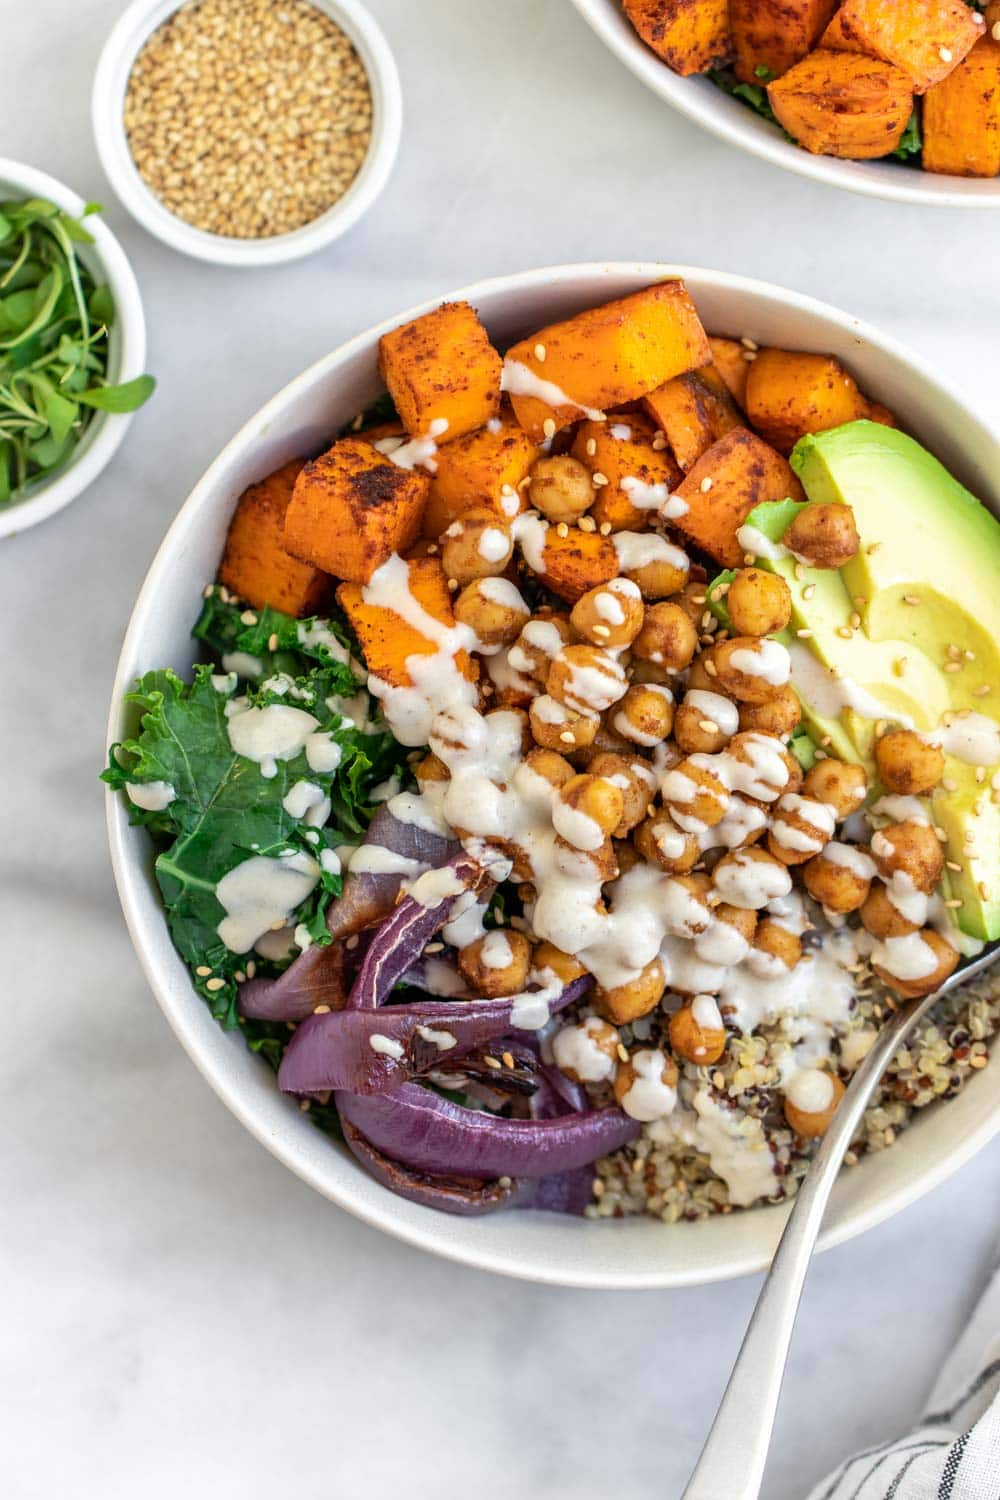 Chickpea buddha bowl with tahini dressing.